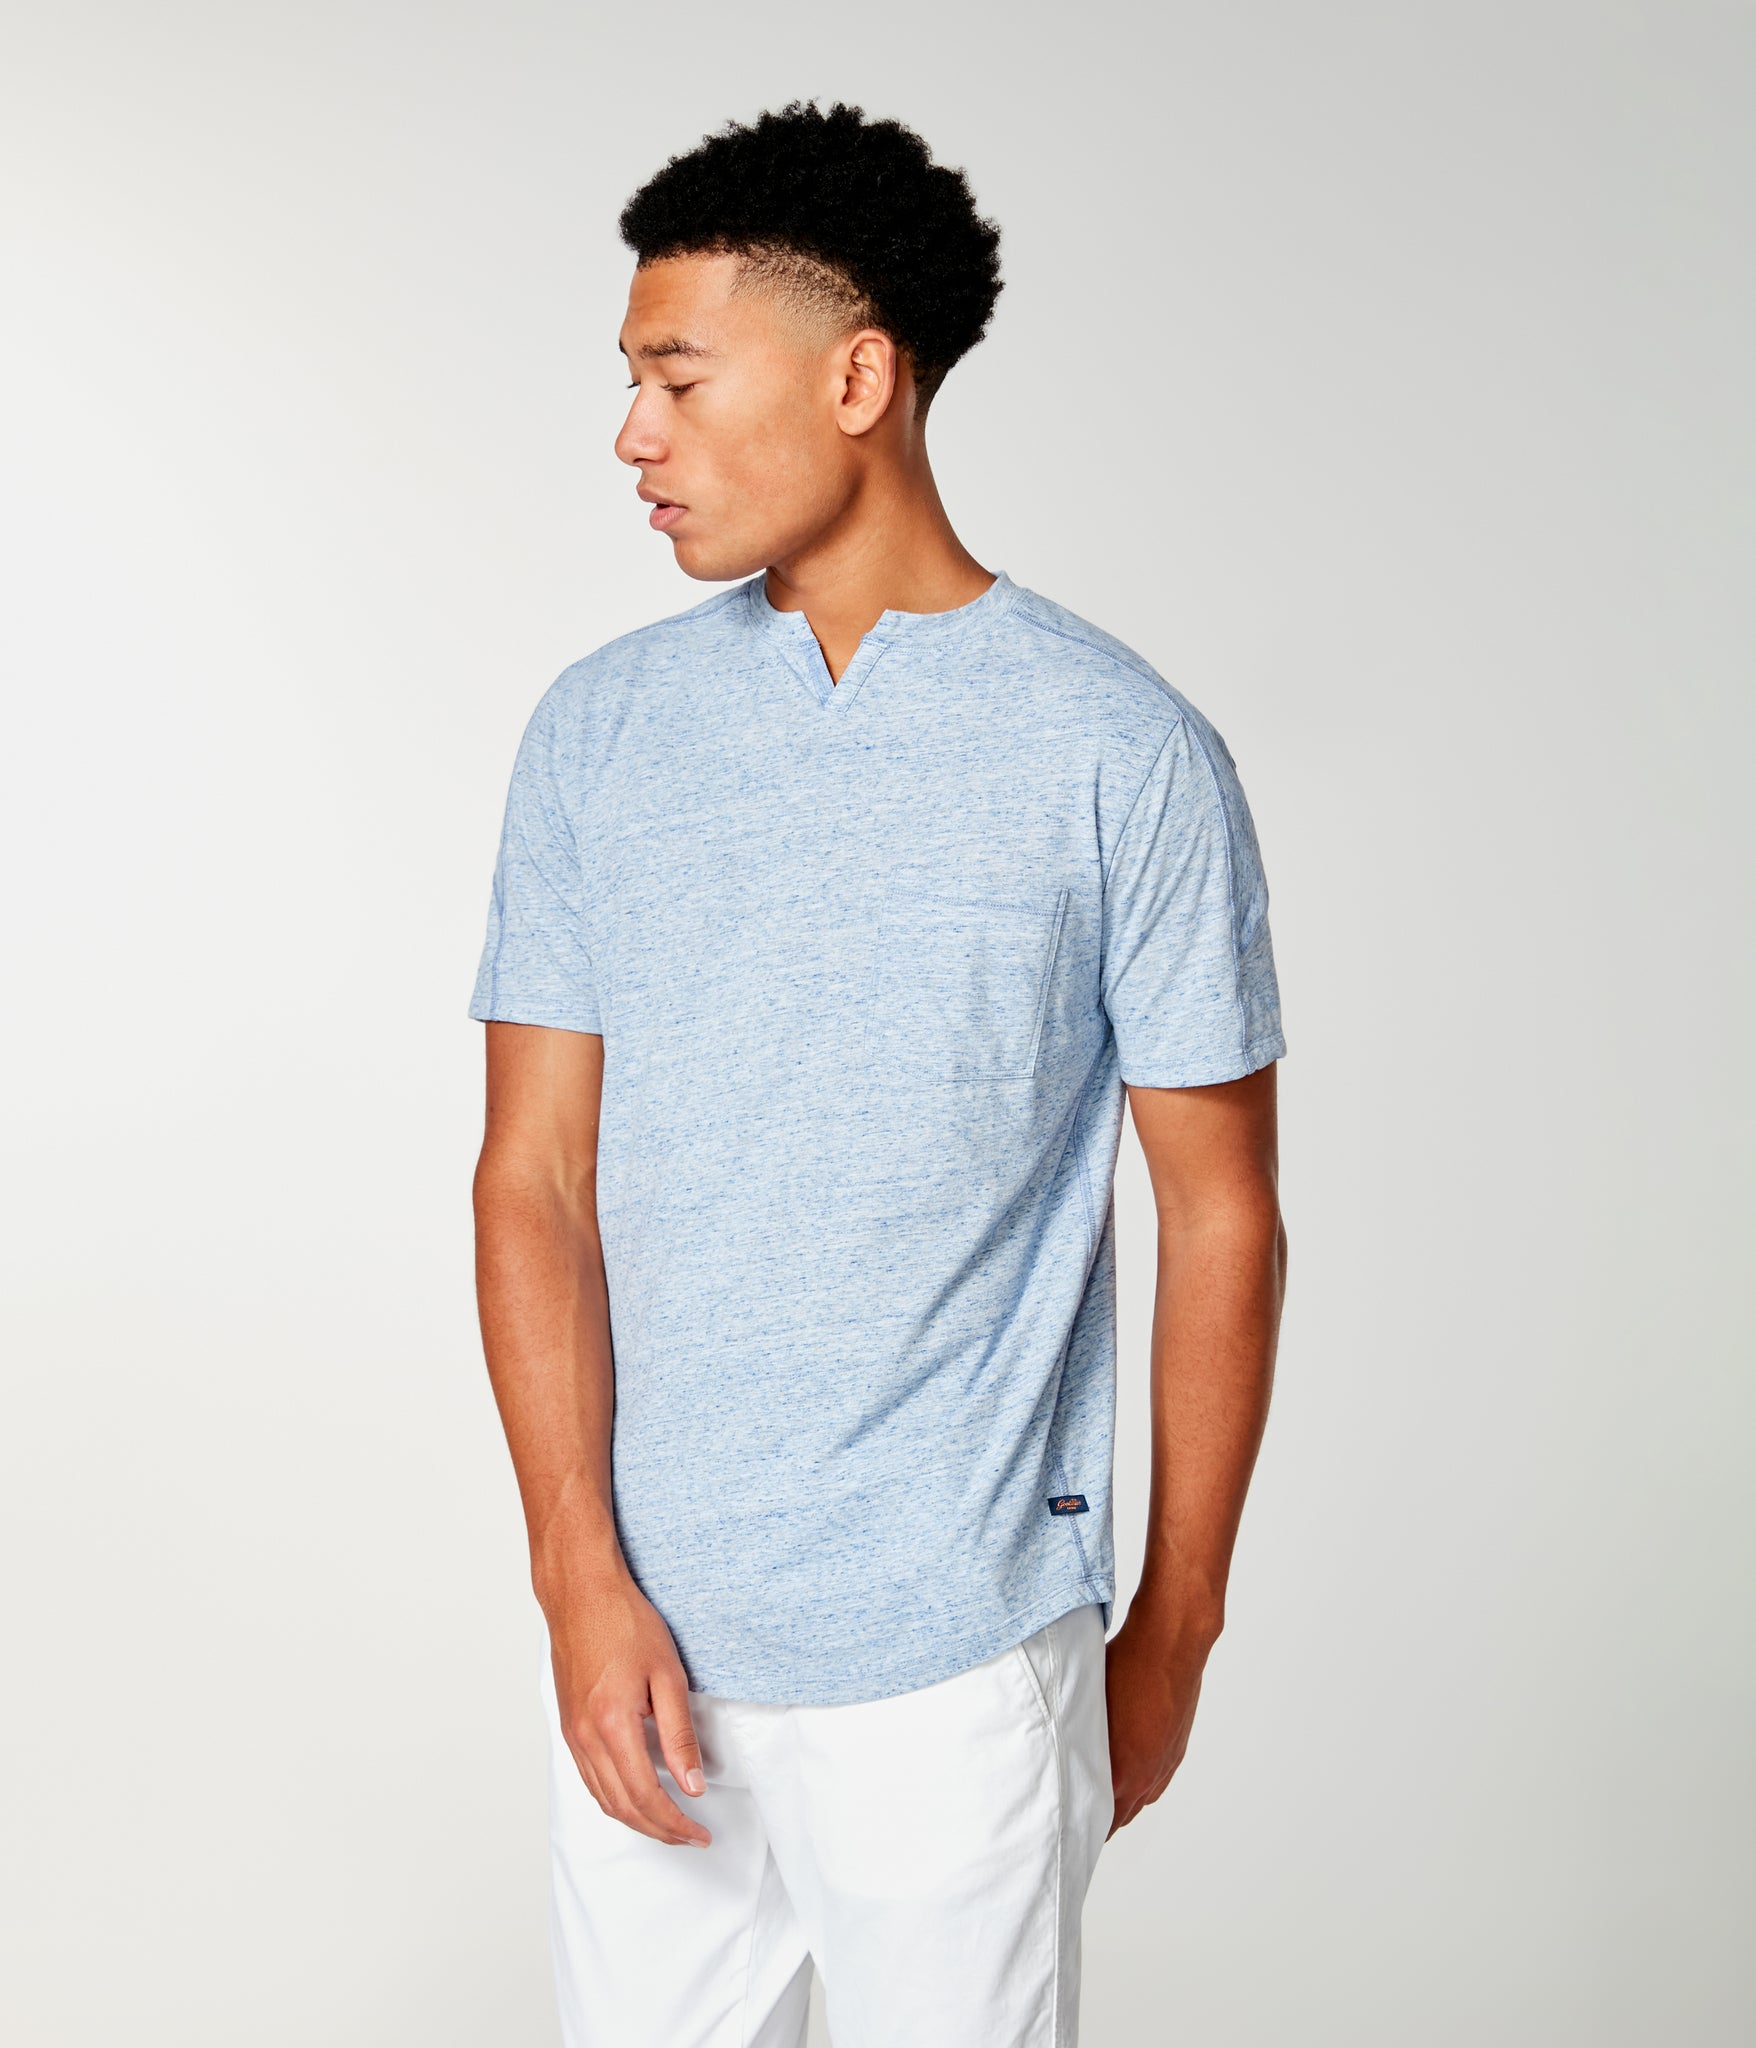 Ss Victory V-Notch Tee - Blue Heather